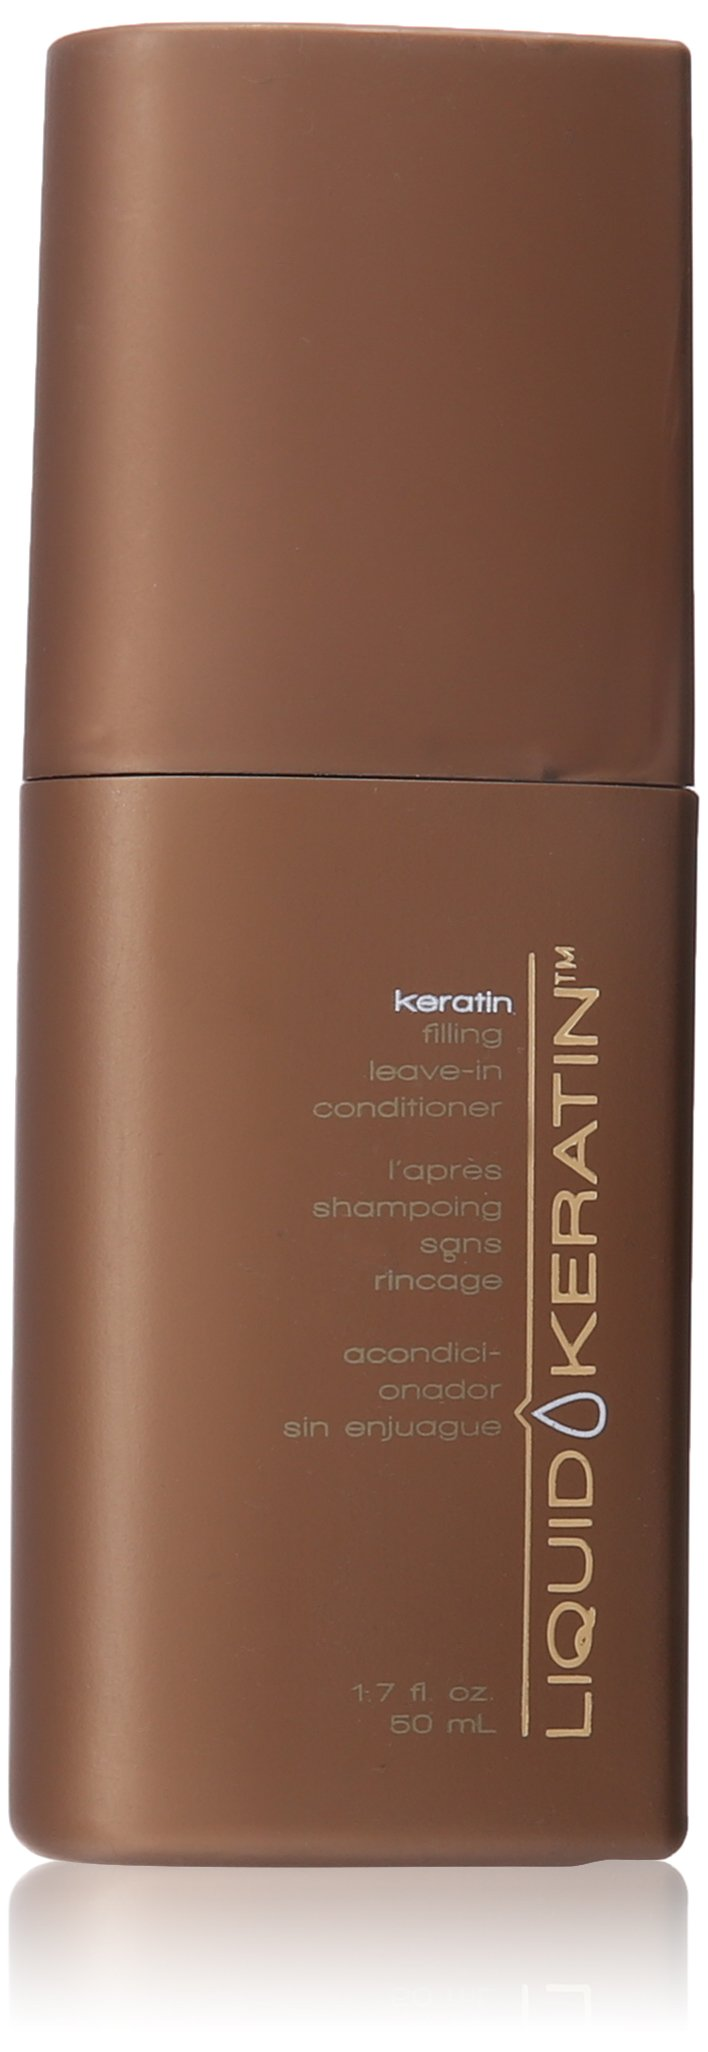 Liquid Keratin Travel Size Leave In Conditioner, 1.7 Ounce